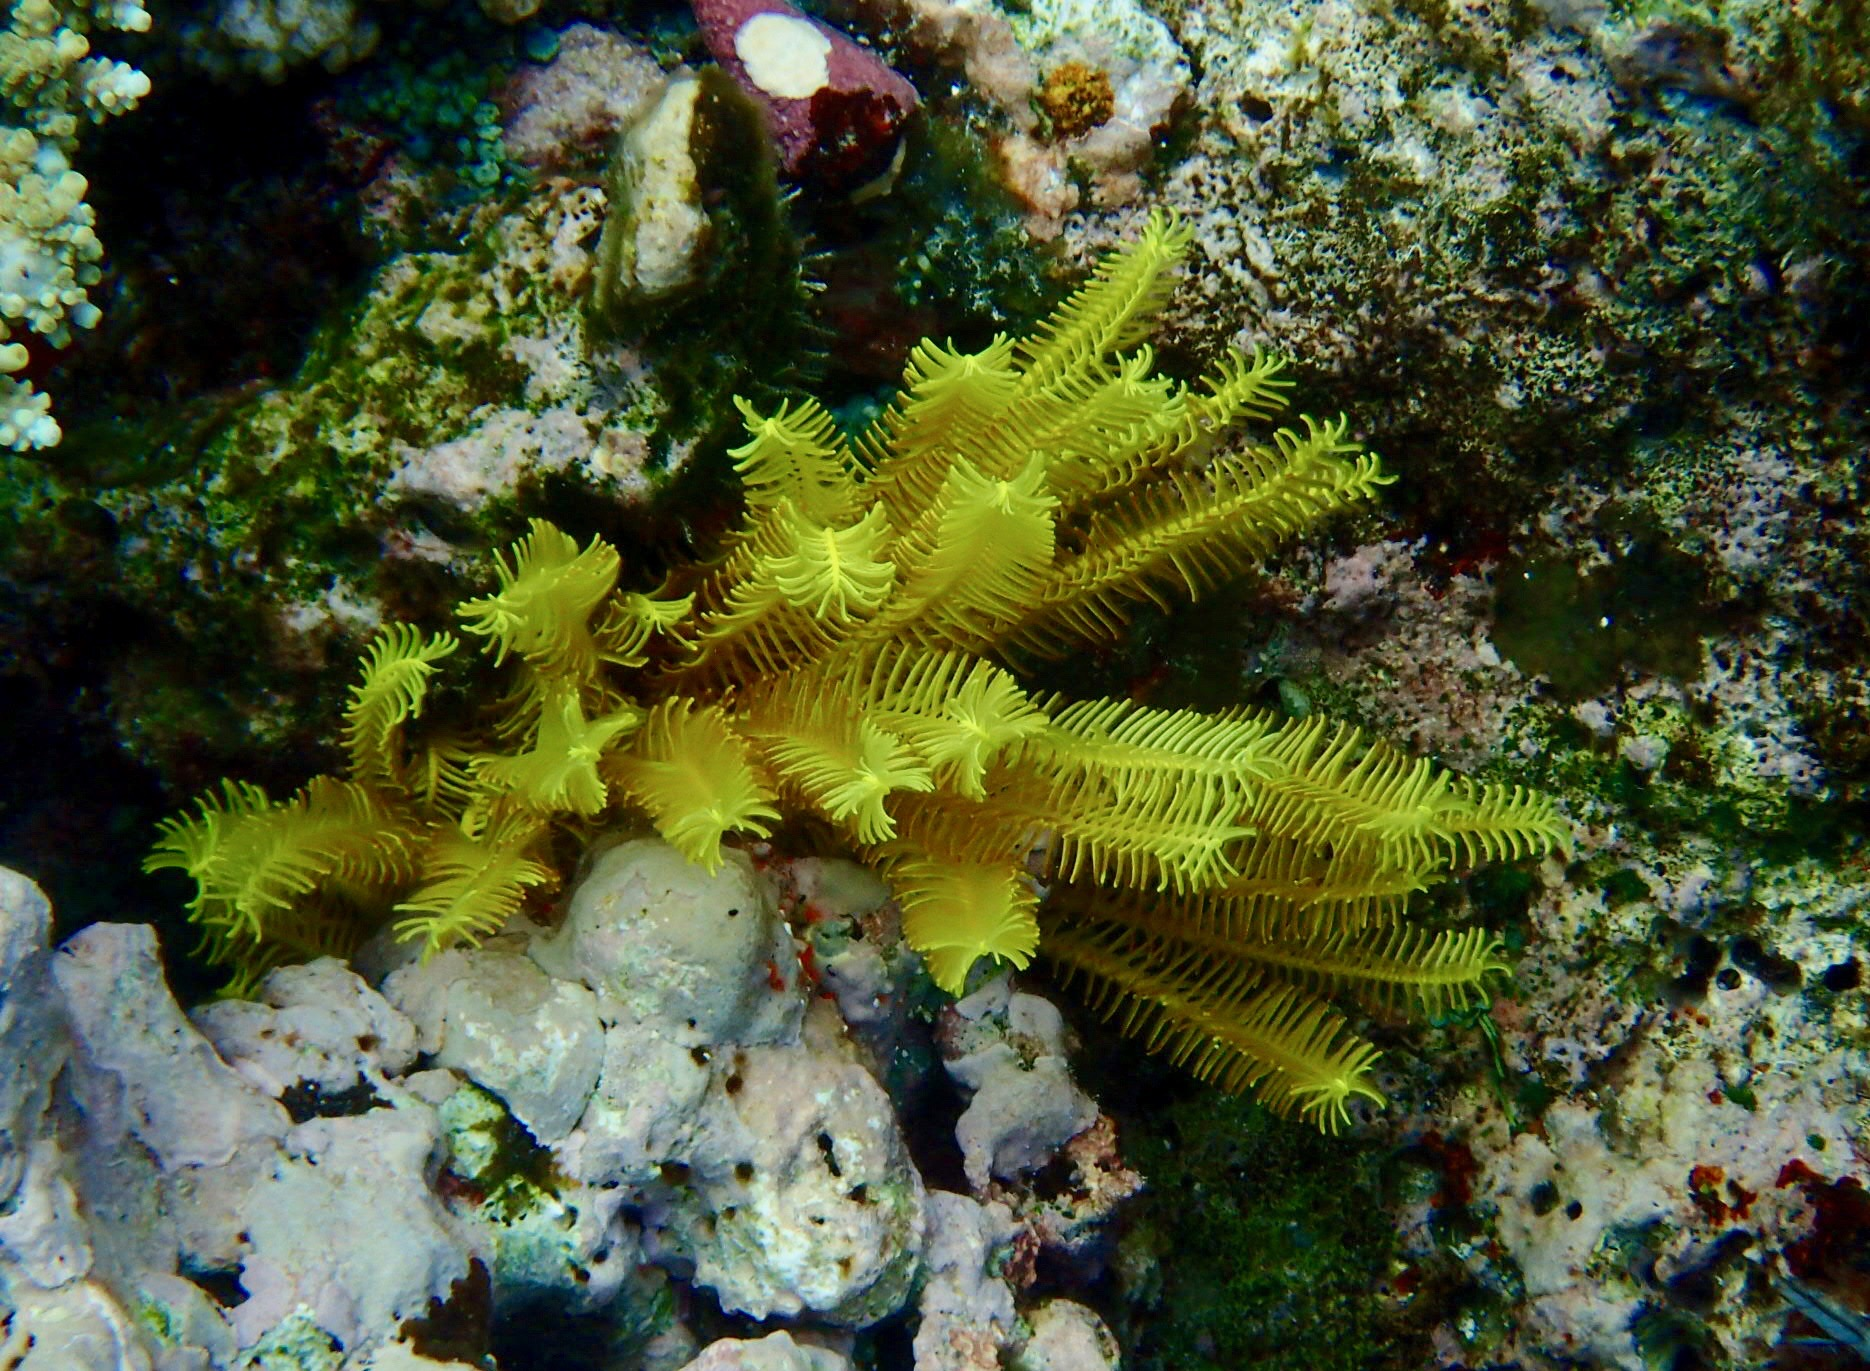 Yellow feather star coral